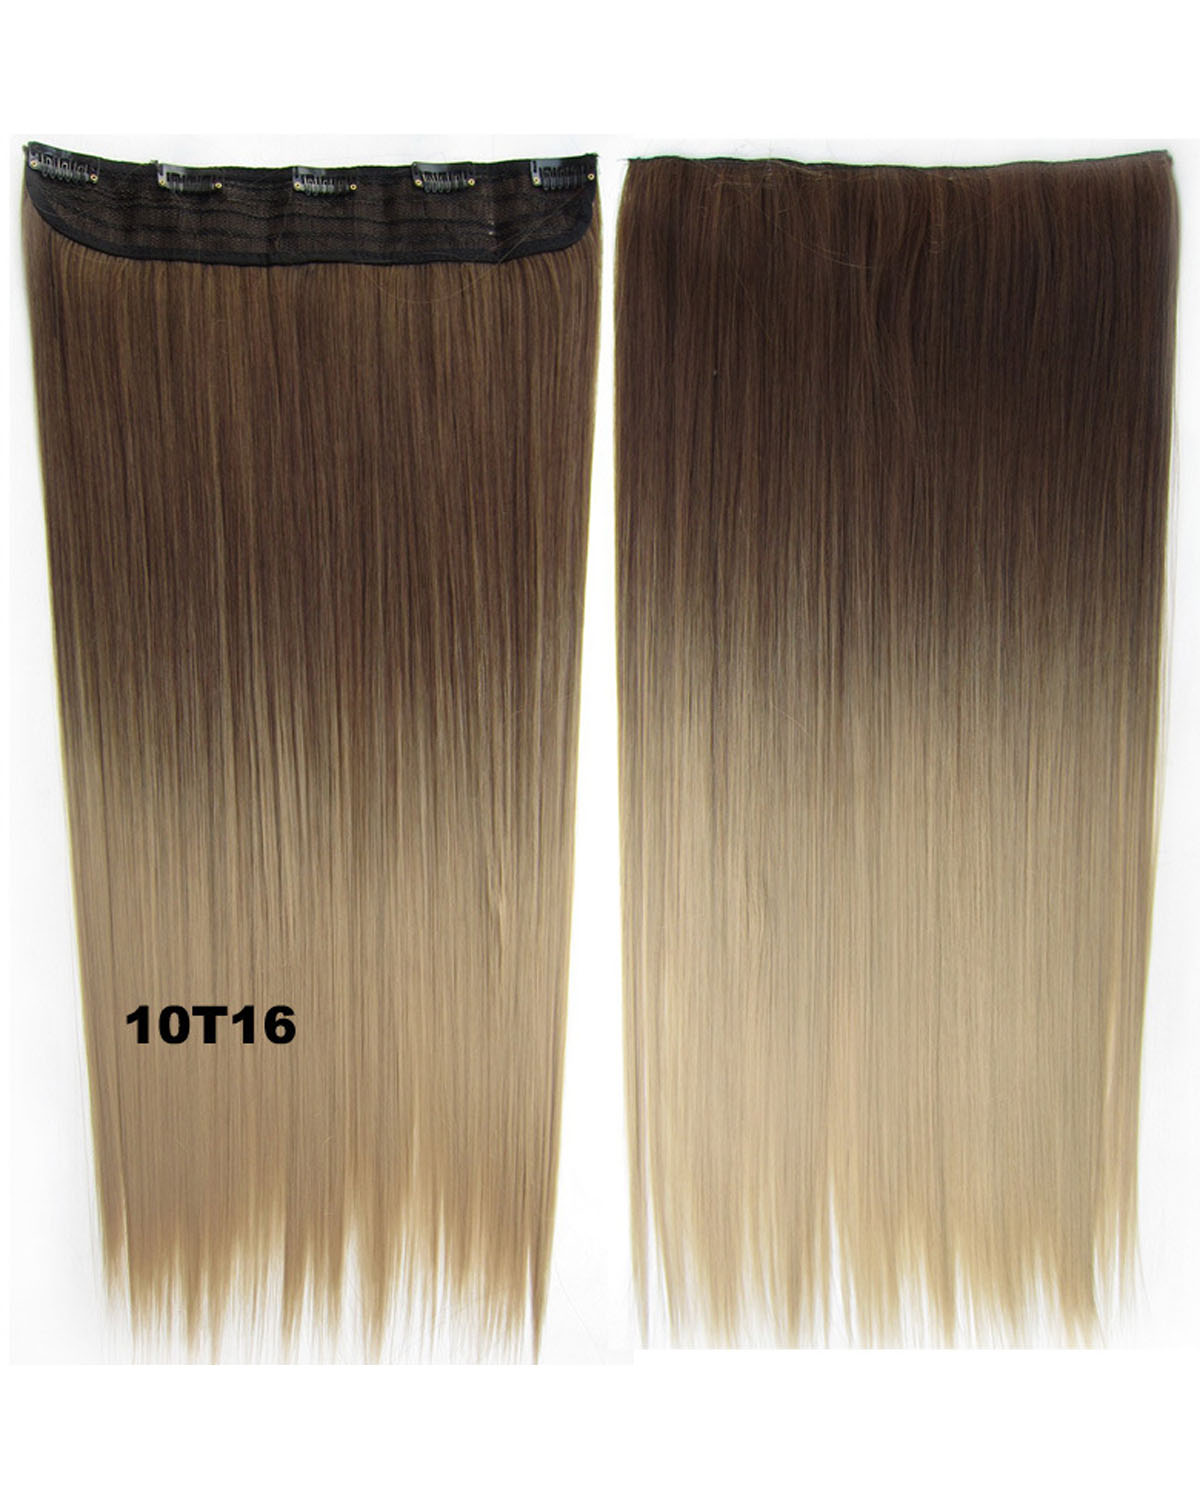 24 Inch Female Preeminent Long and Straight One Piece 5 Clips Clip in Synthetic Hair Extension Ombre 10T16